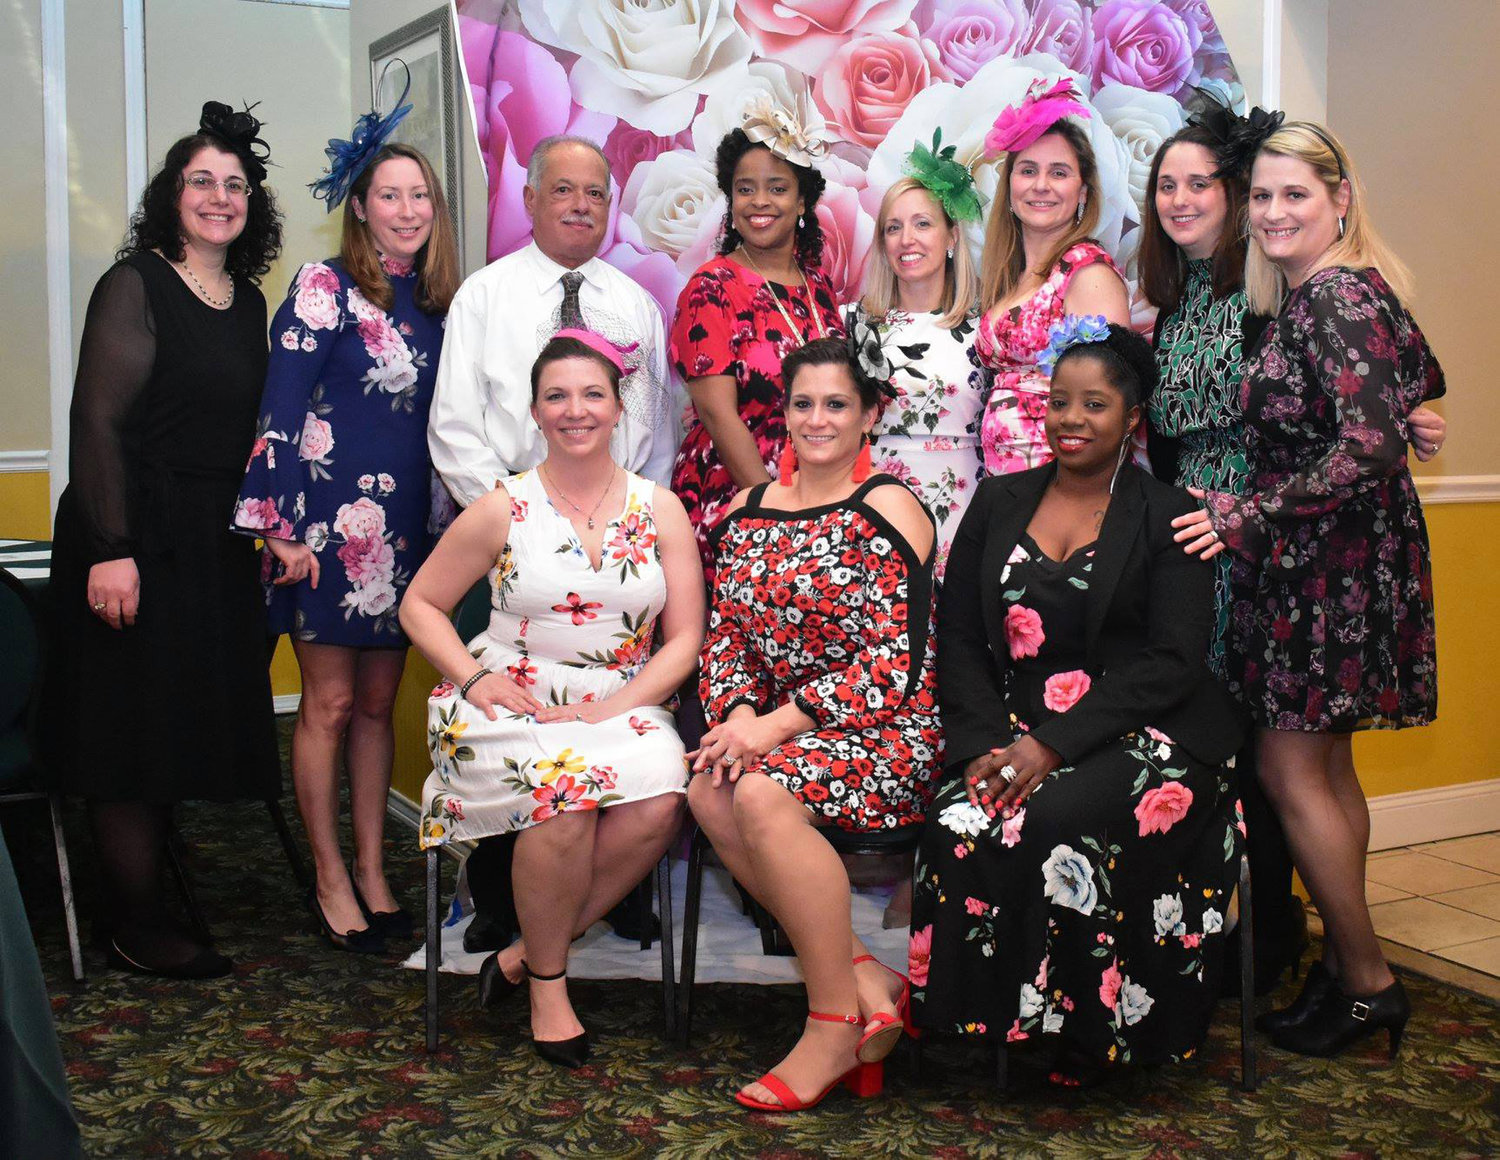 Hayley Kelch, standing fourth from right, coordinated Maurice W. Downing's annual Downing Night Out fundraiser as the group's co-president from 2017 to 2019.